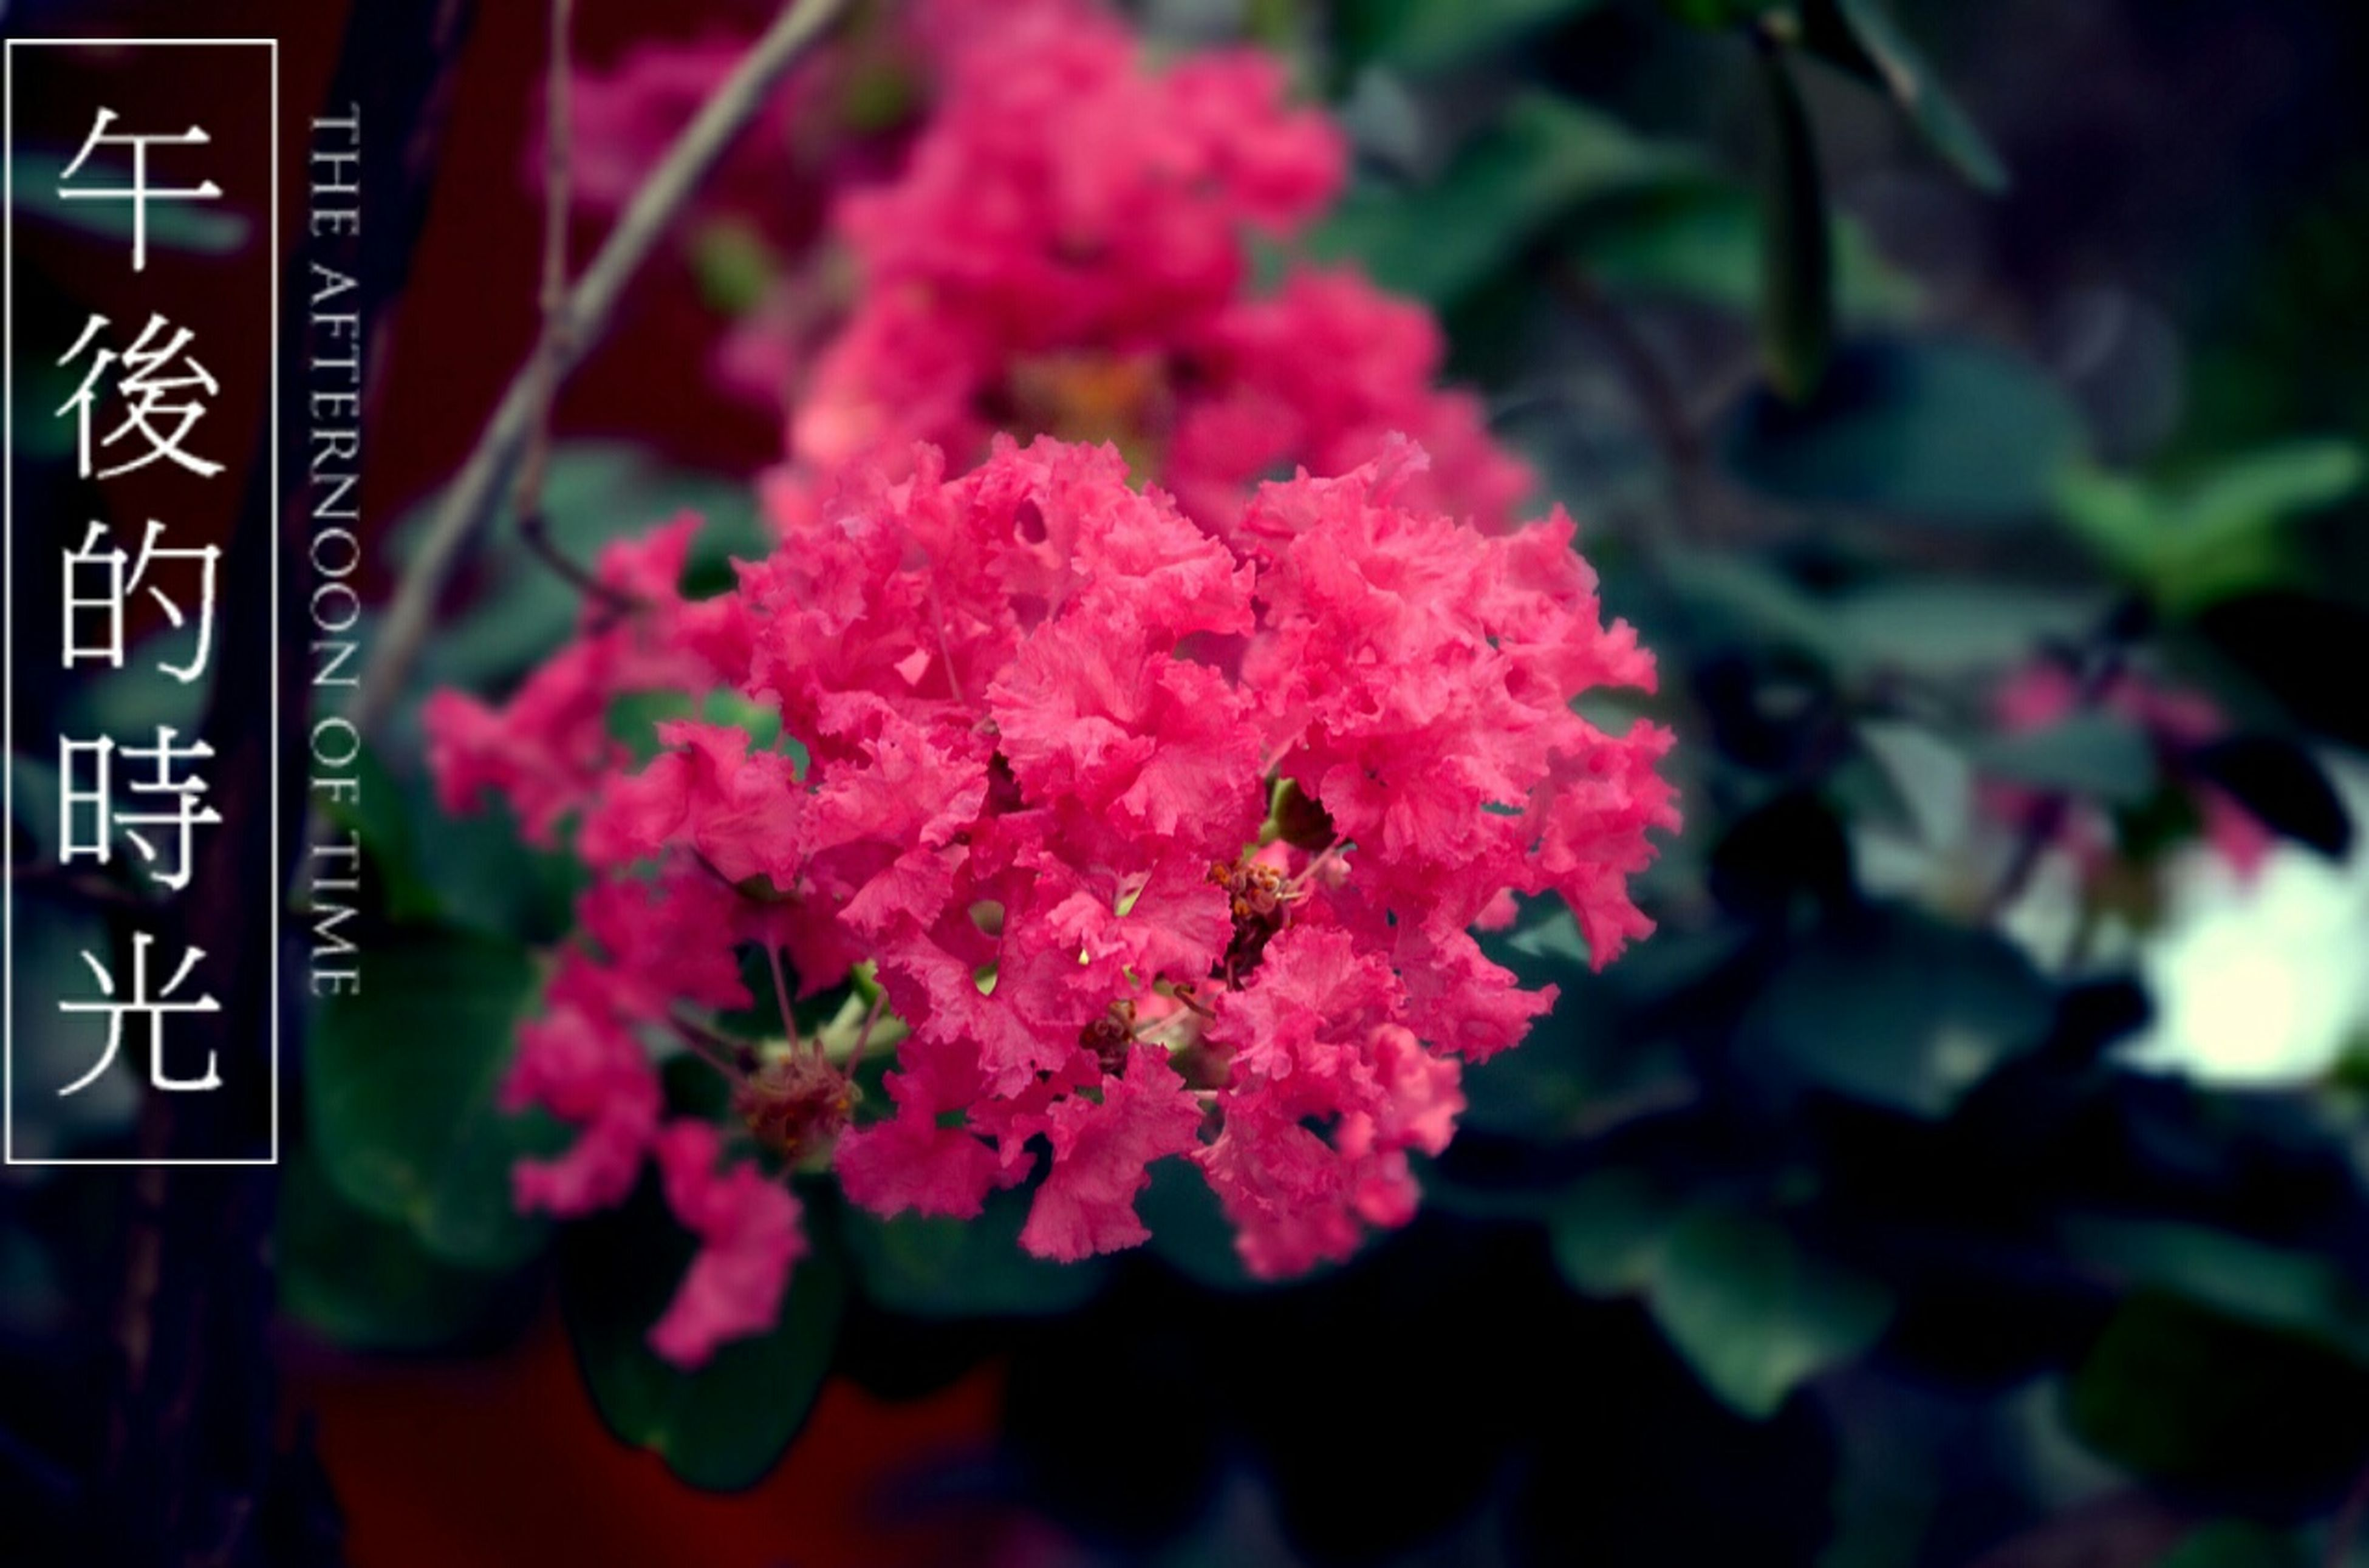 flower, freshness, growth, pink color, fragility, beauty in nature, nature, focus on foreground, plant, petal, close-up, blooming, leaf, outdoors, day, no people, blossom, selective focus, text, in bloom